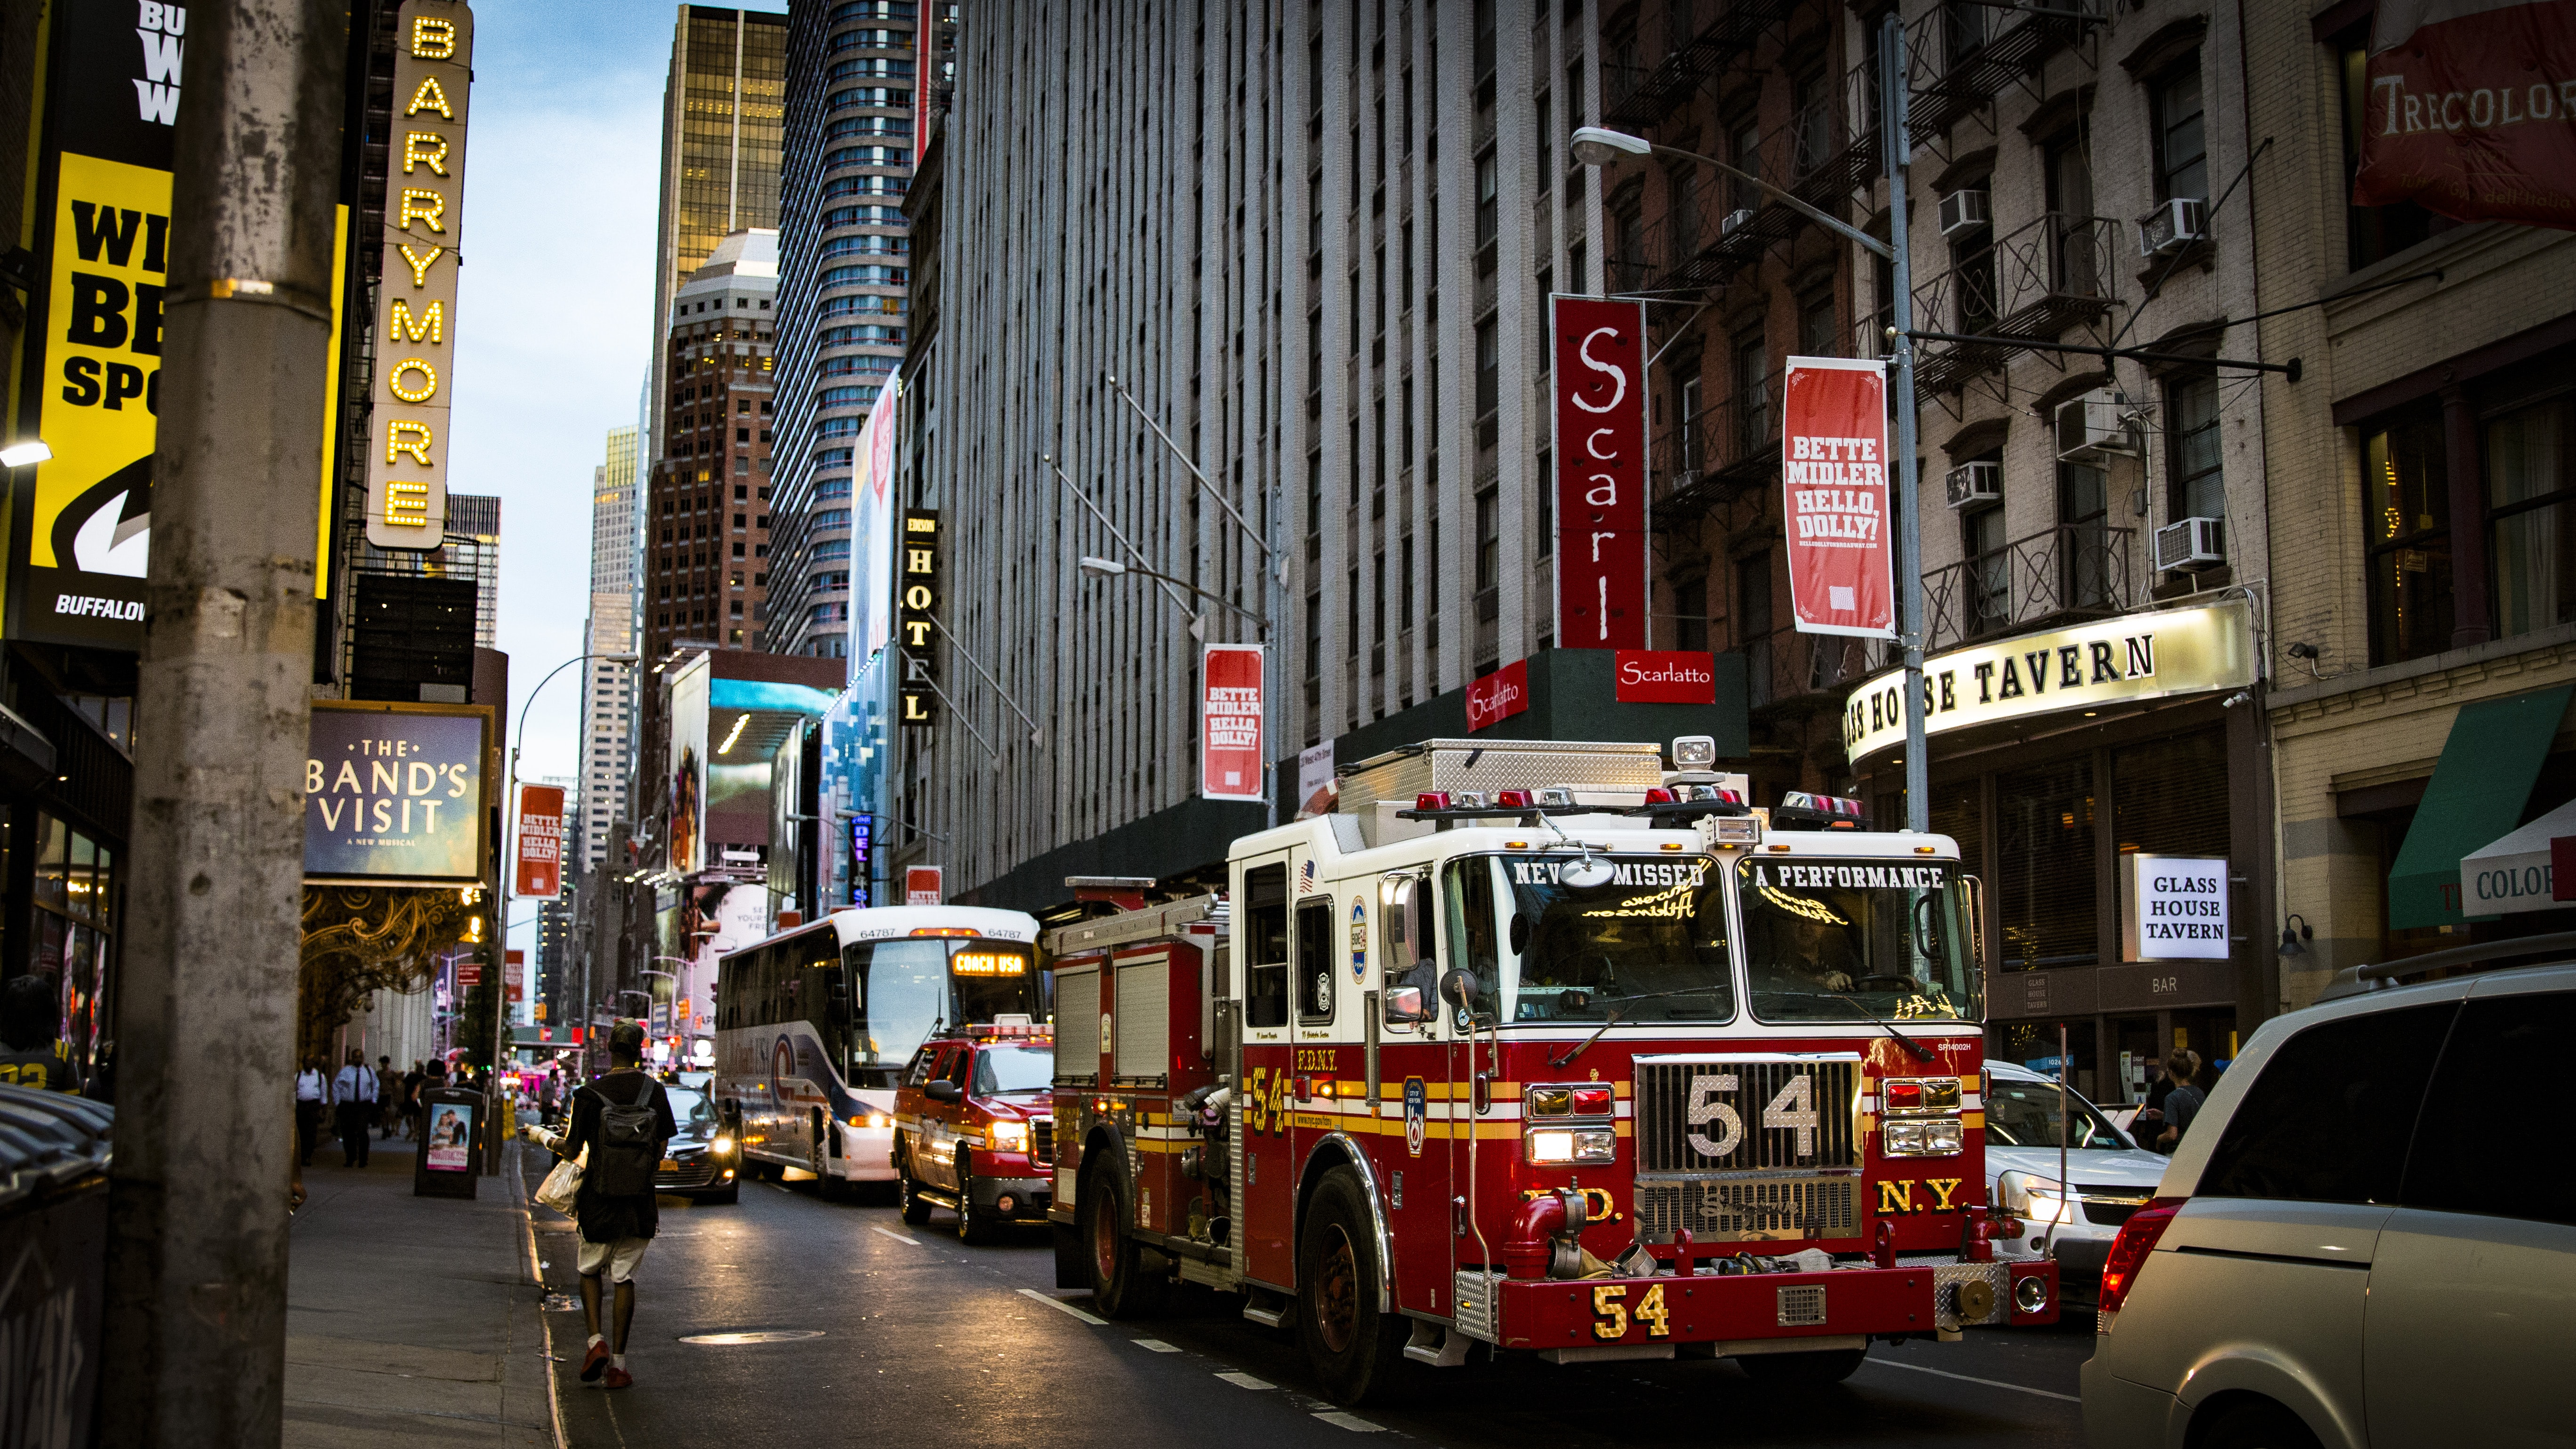 Firetruck stuck in downtown traffic on a busy New York City street